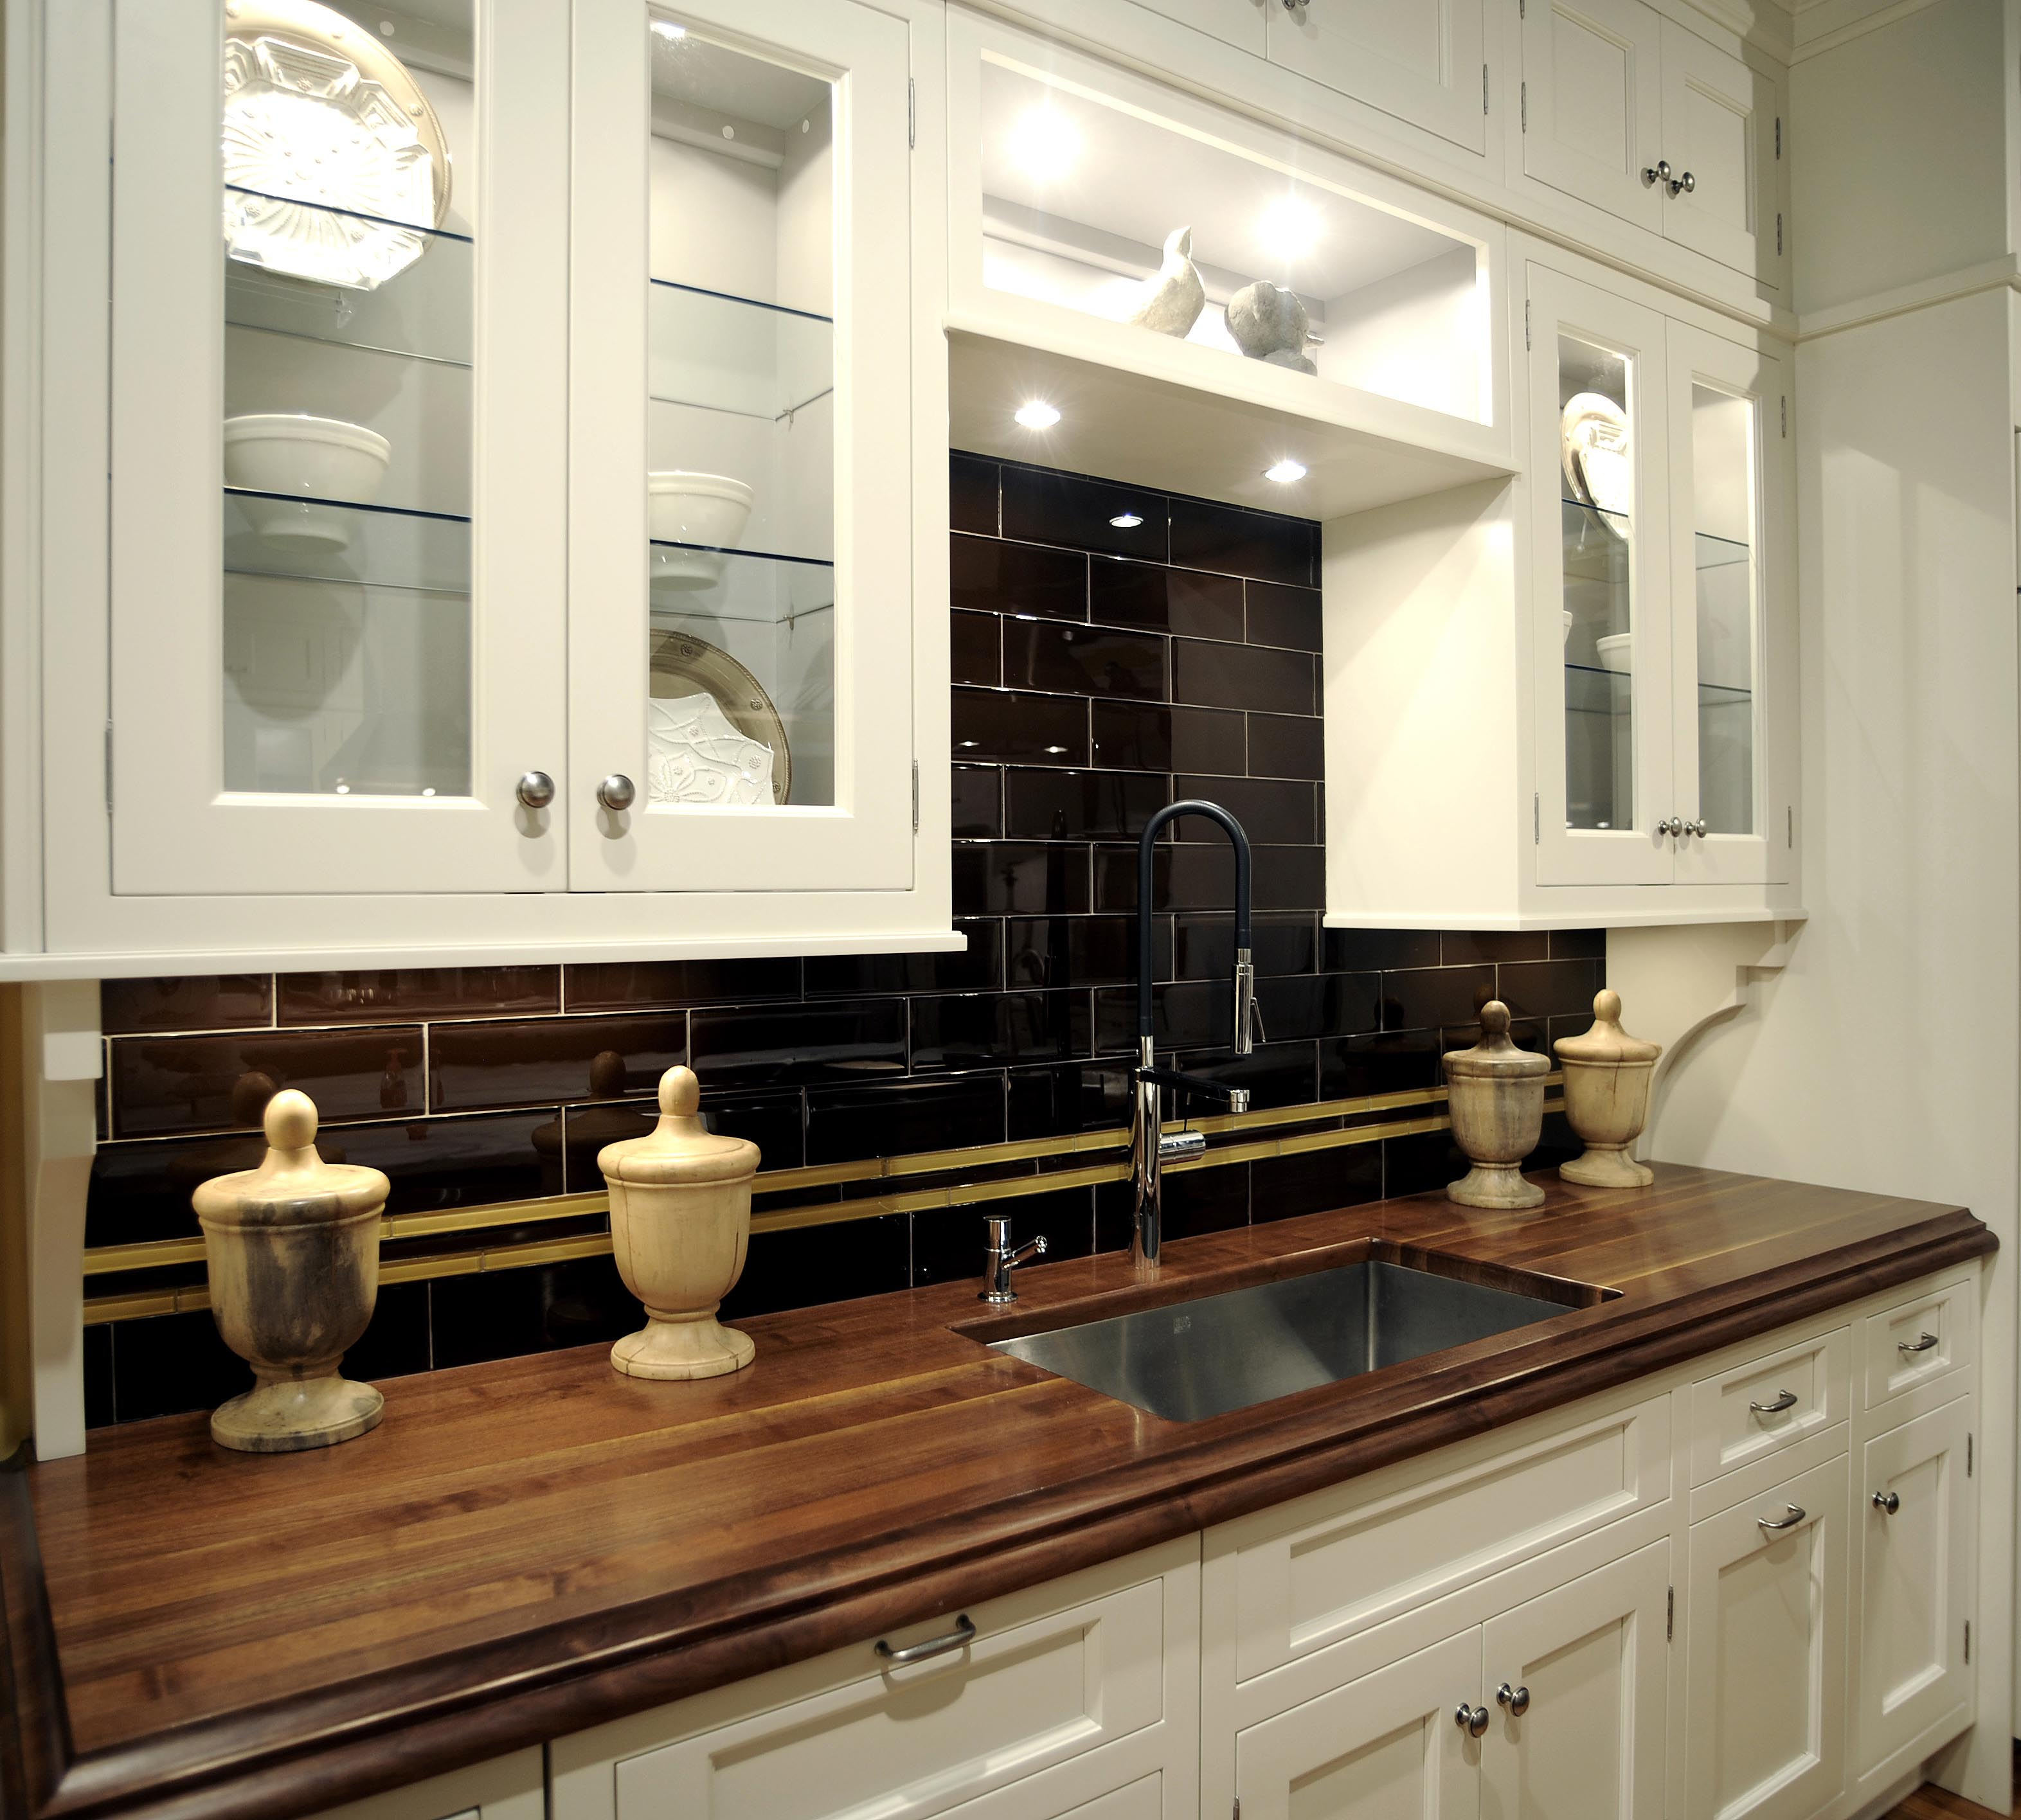 wonderful white wooden kitchen cabinet with silver handle and wilsonart laminate countertops plus dark tile backspash for kitchen decor ideas